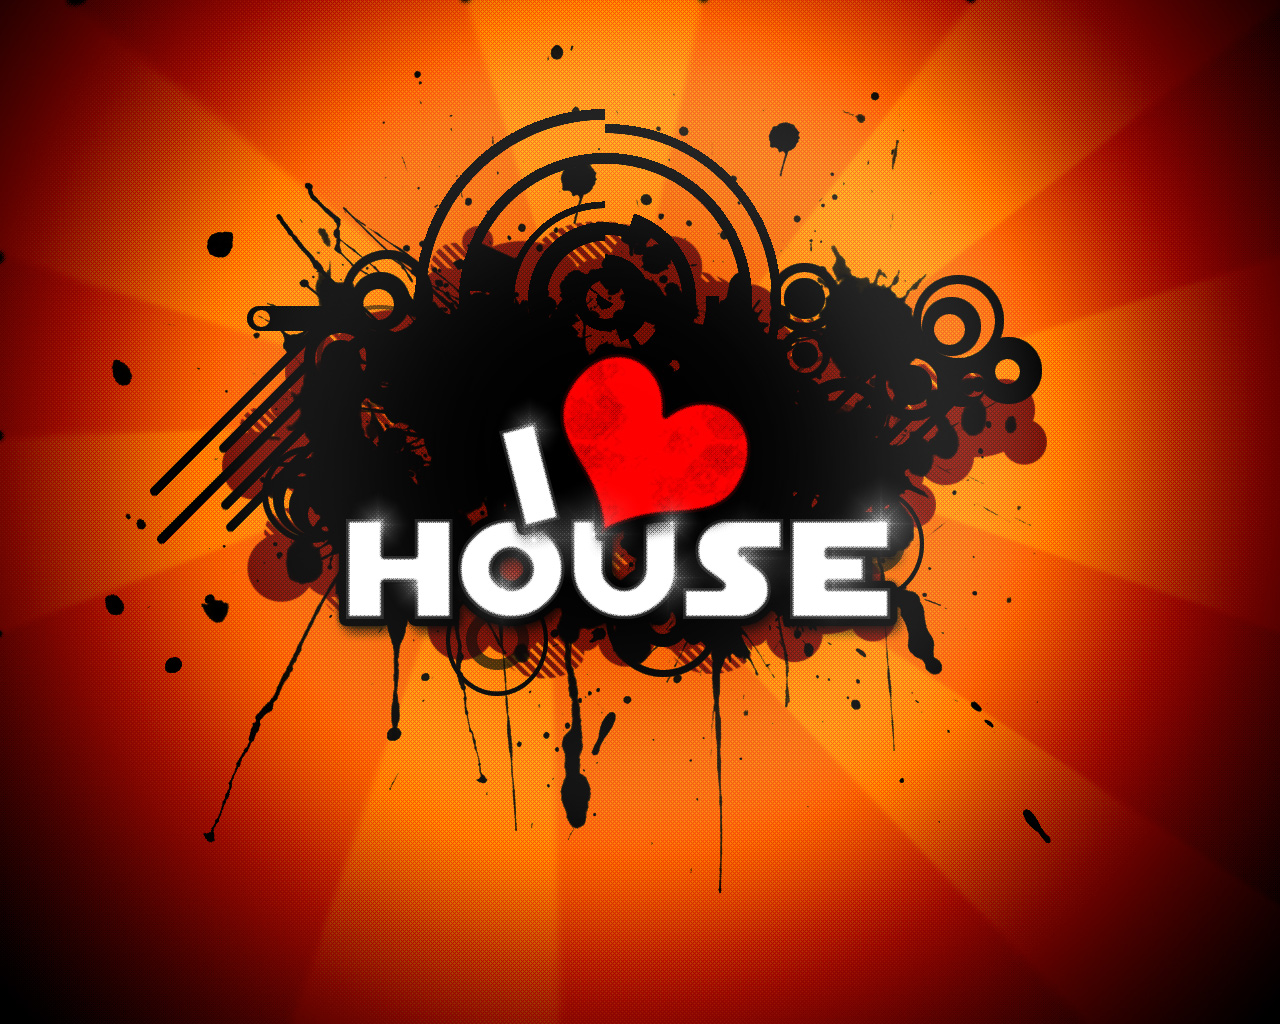 House music for House of music